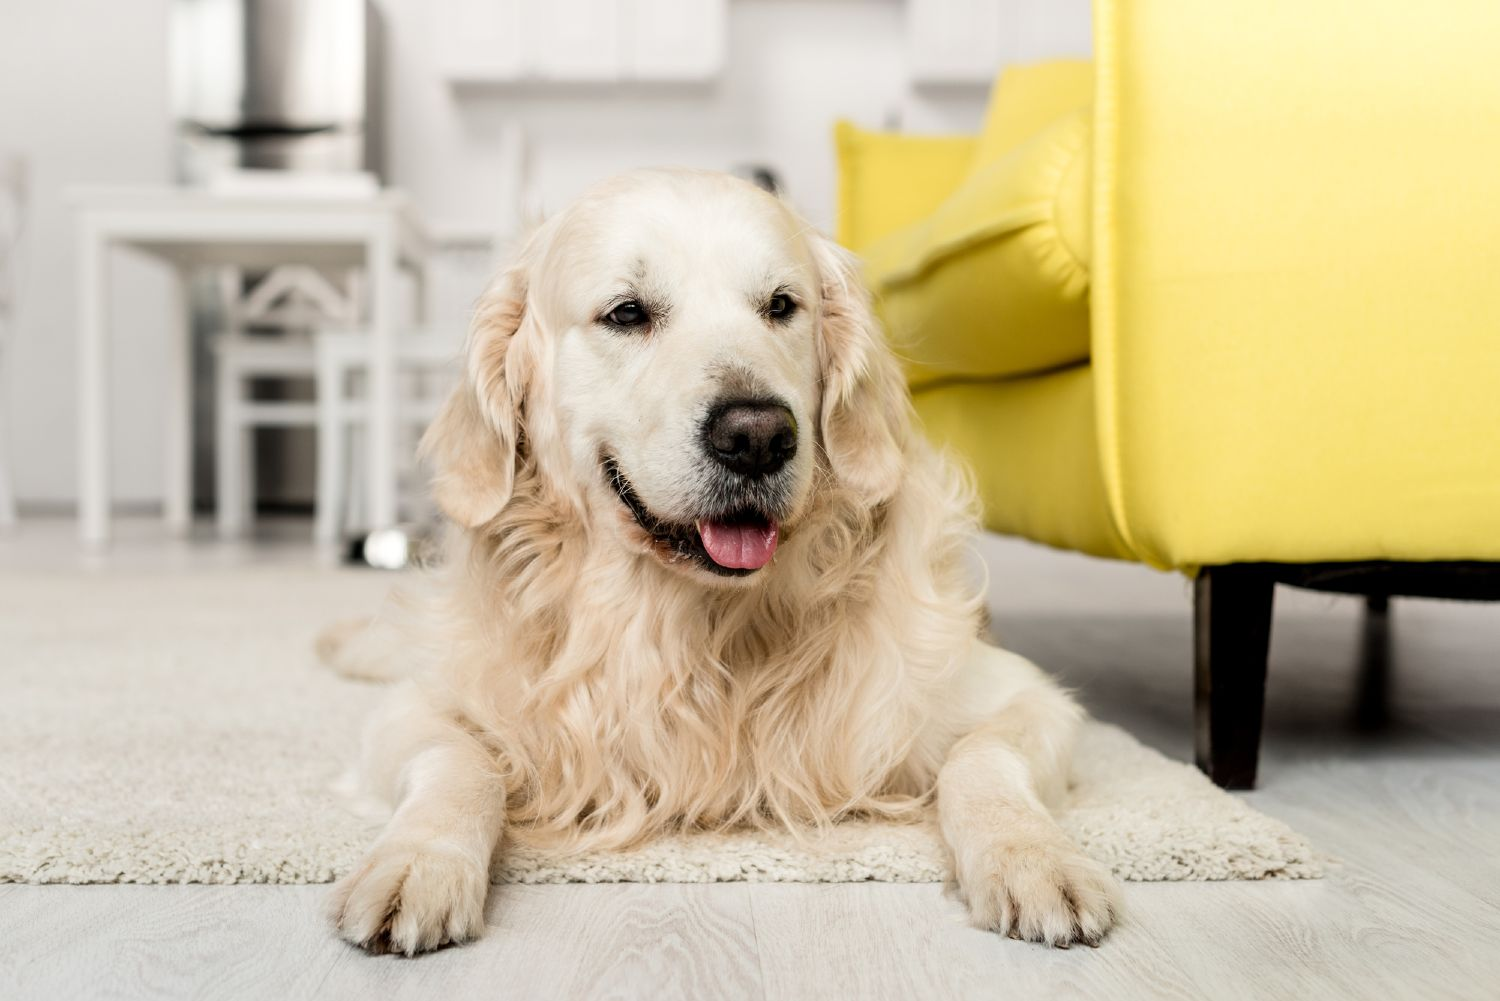 Dog resting on a floor with a yellow couch in the background